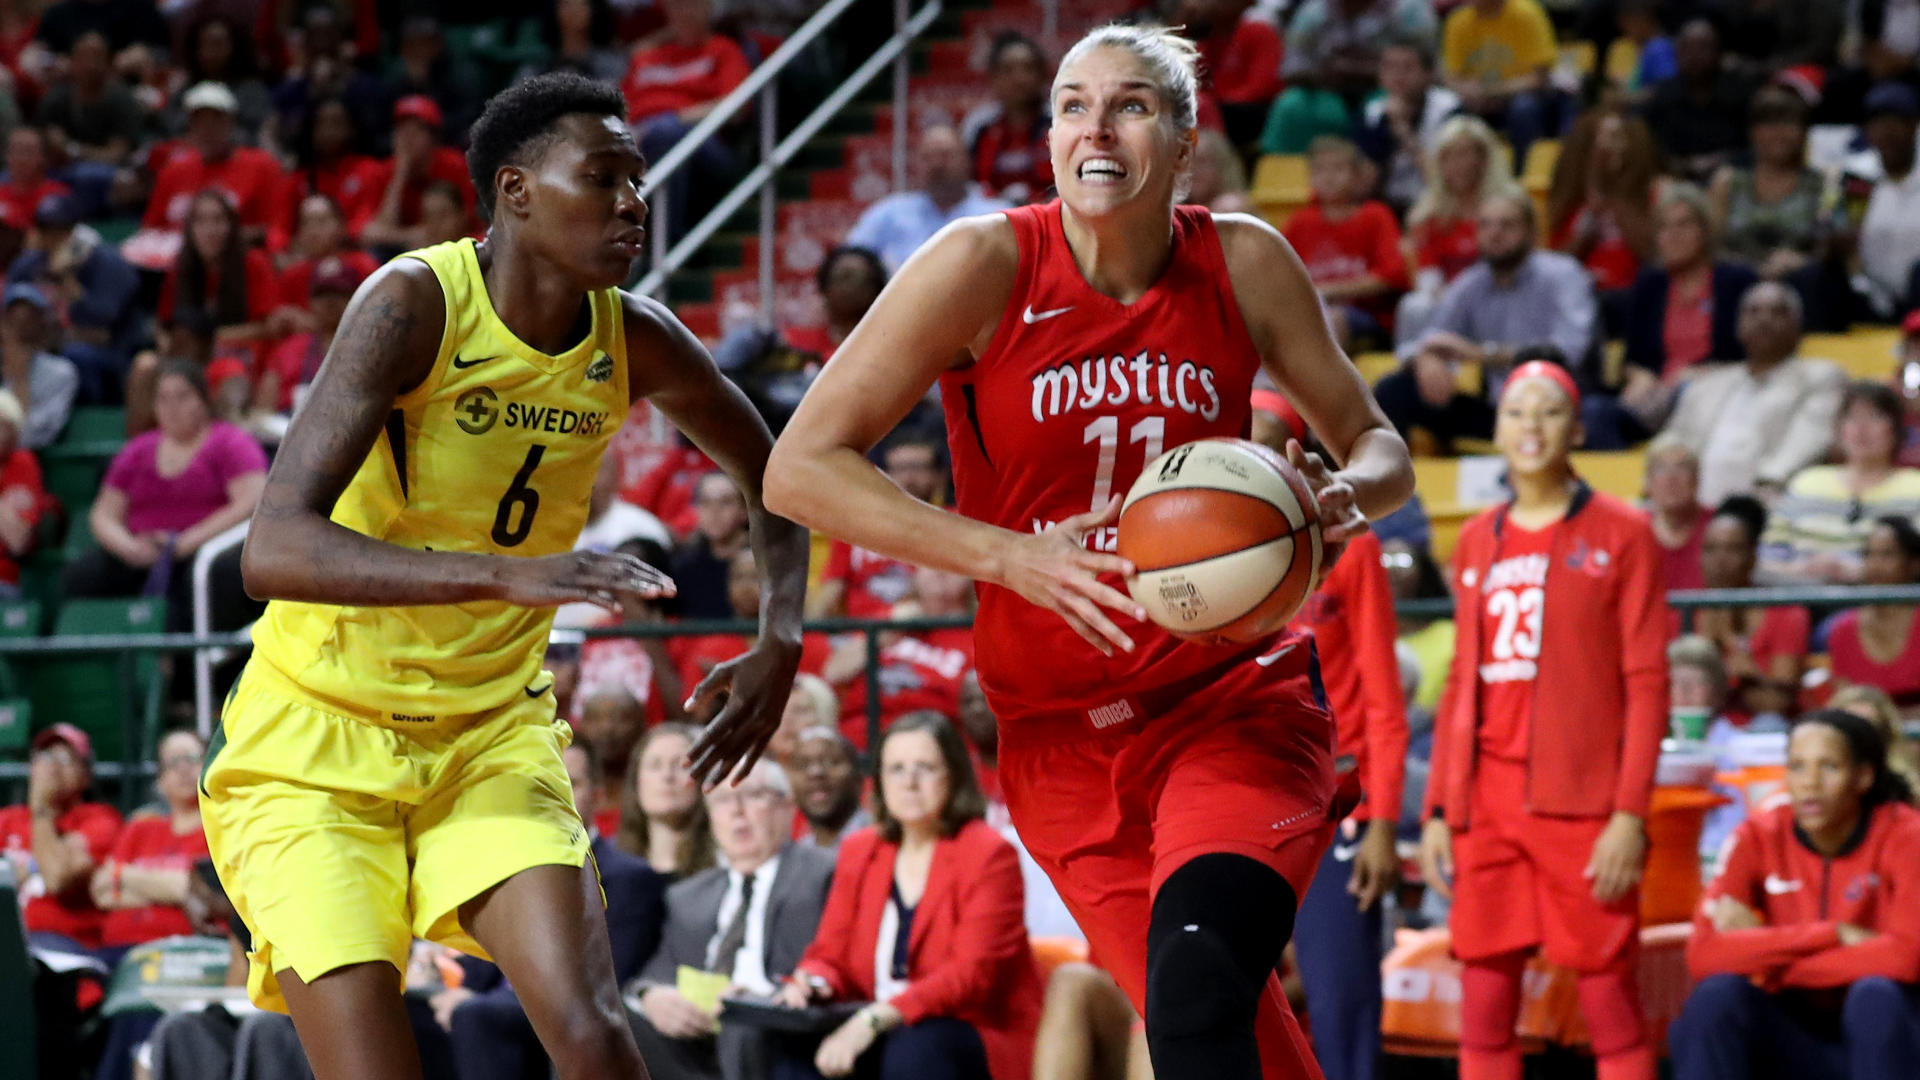 WNBA DFS: Sylvia Fowles and top picks for May 25 FanDuel, DraftKings lineups